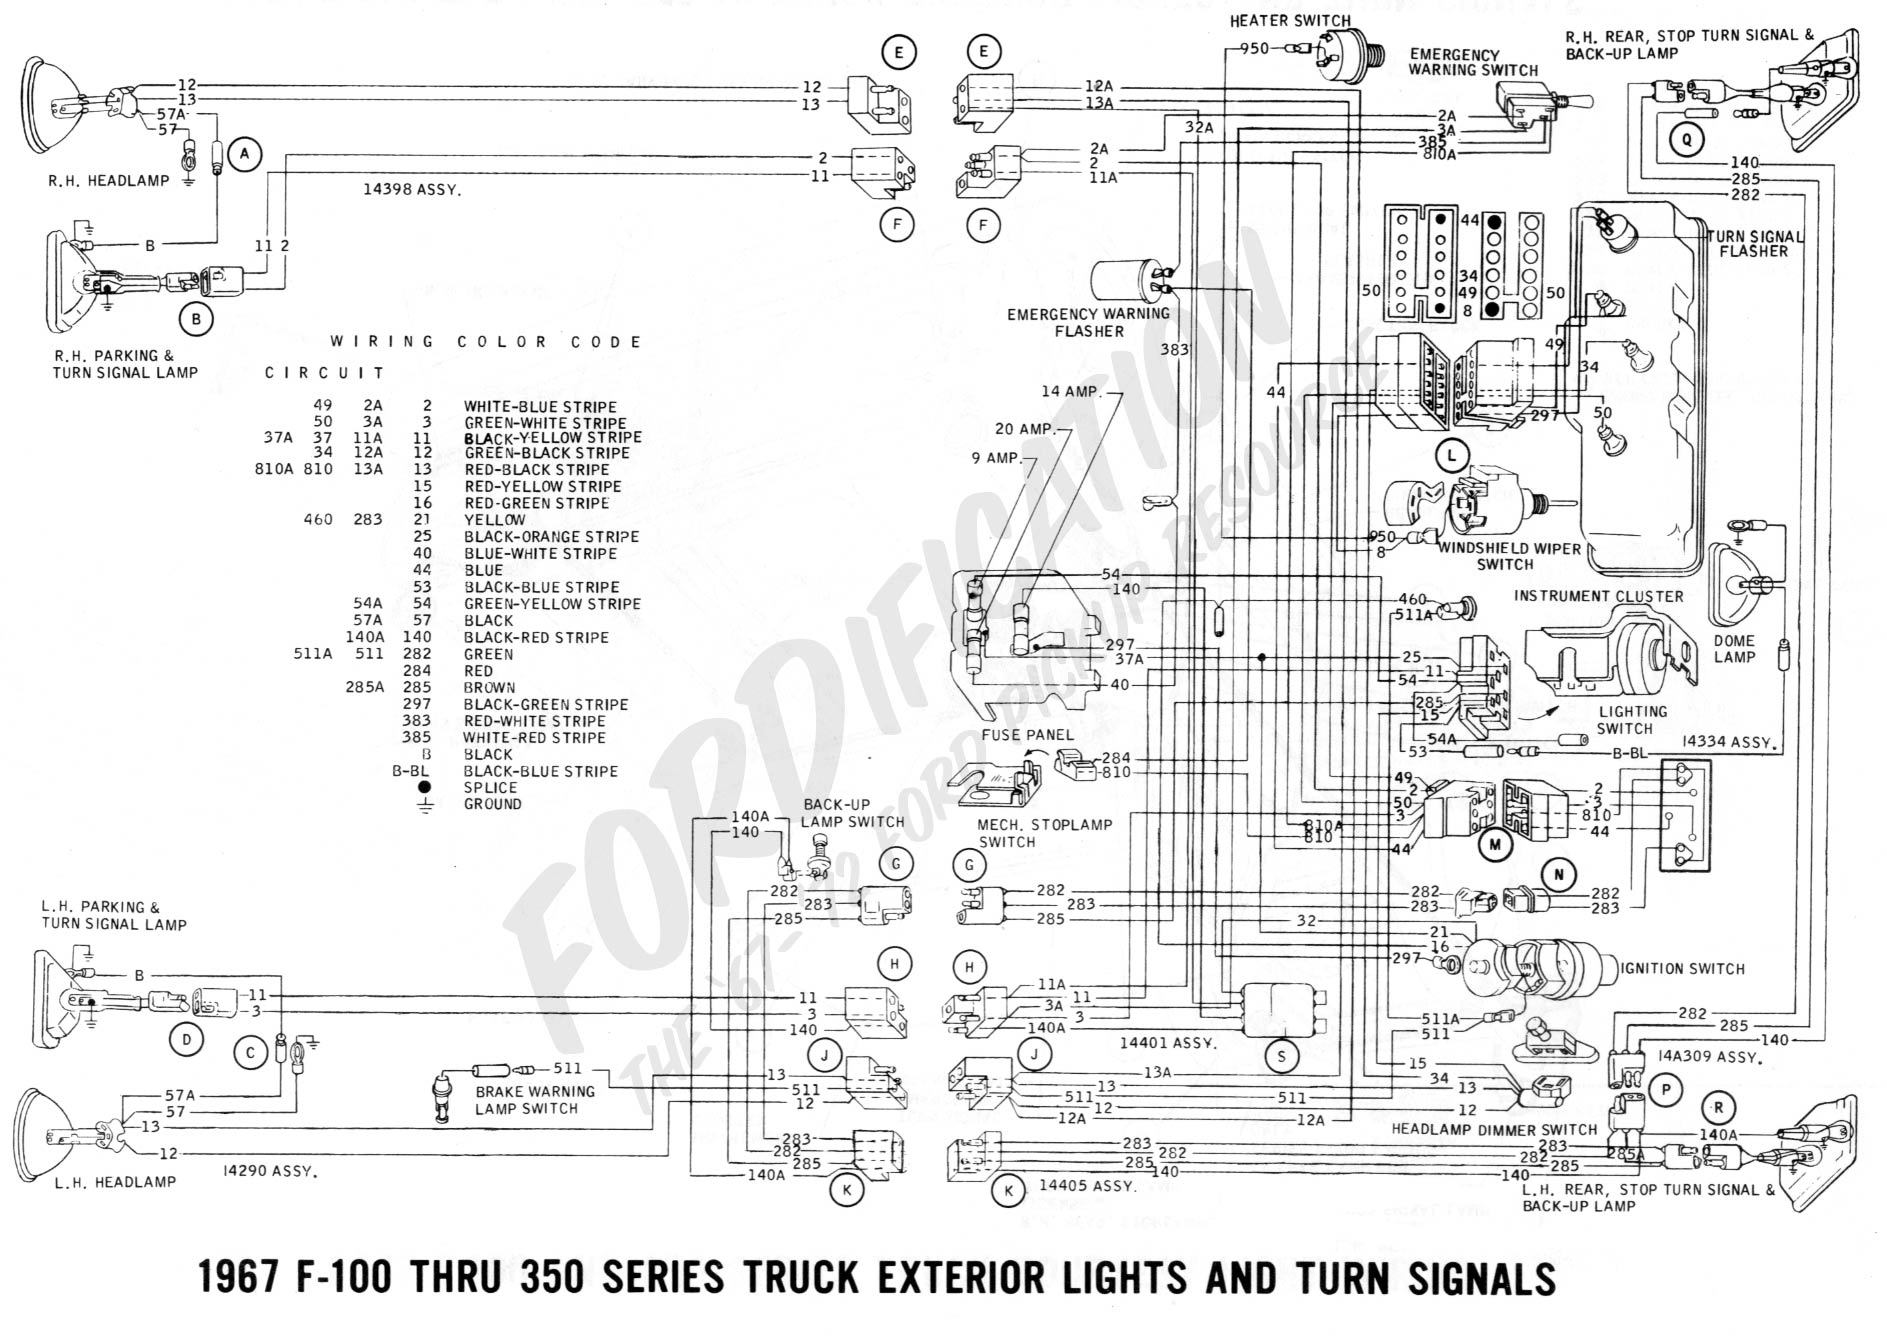 80 1967_exterior_lights_and_turn_signals_page_2_1db6c529c4c9567560e56d6320f993290ba5b803 1967 mustang wiring diagram efcaviation com 1967 mustang wiring diagram at gsmportal.co